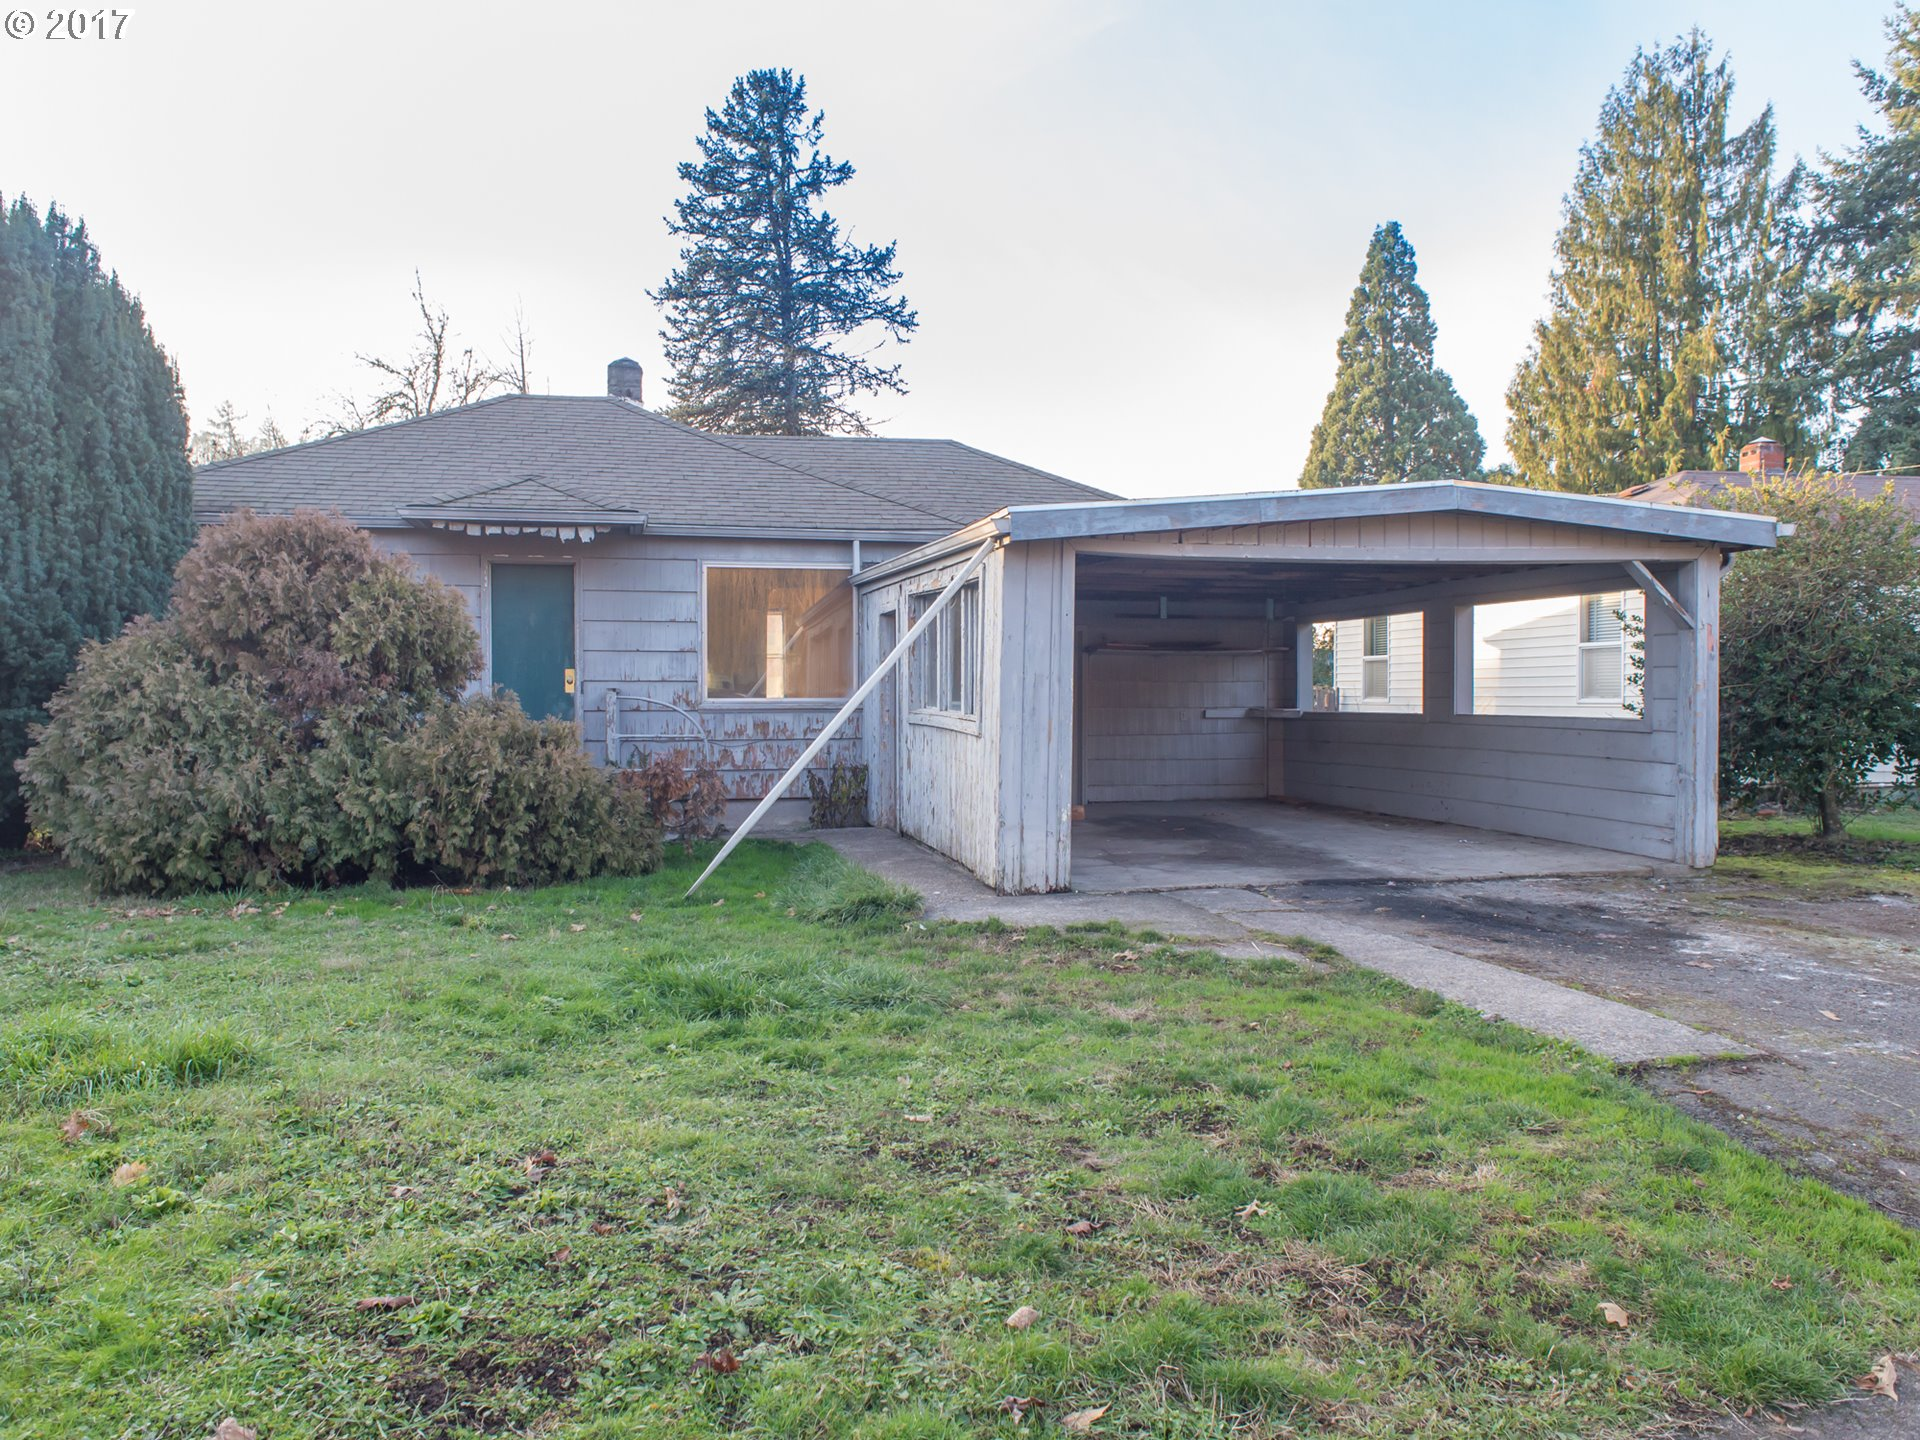 966 1ST ST, Springfield OR 97477